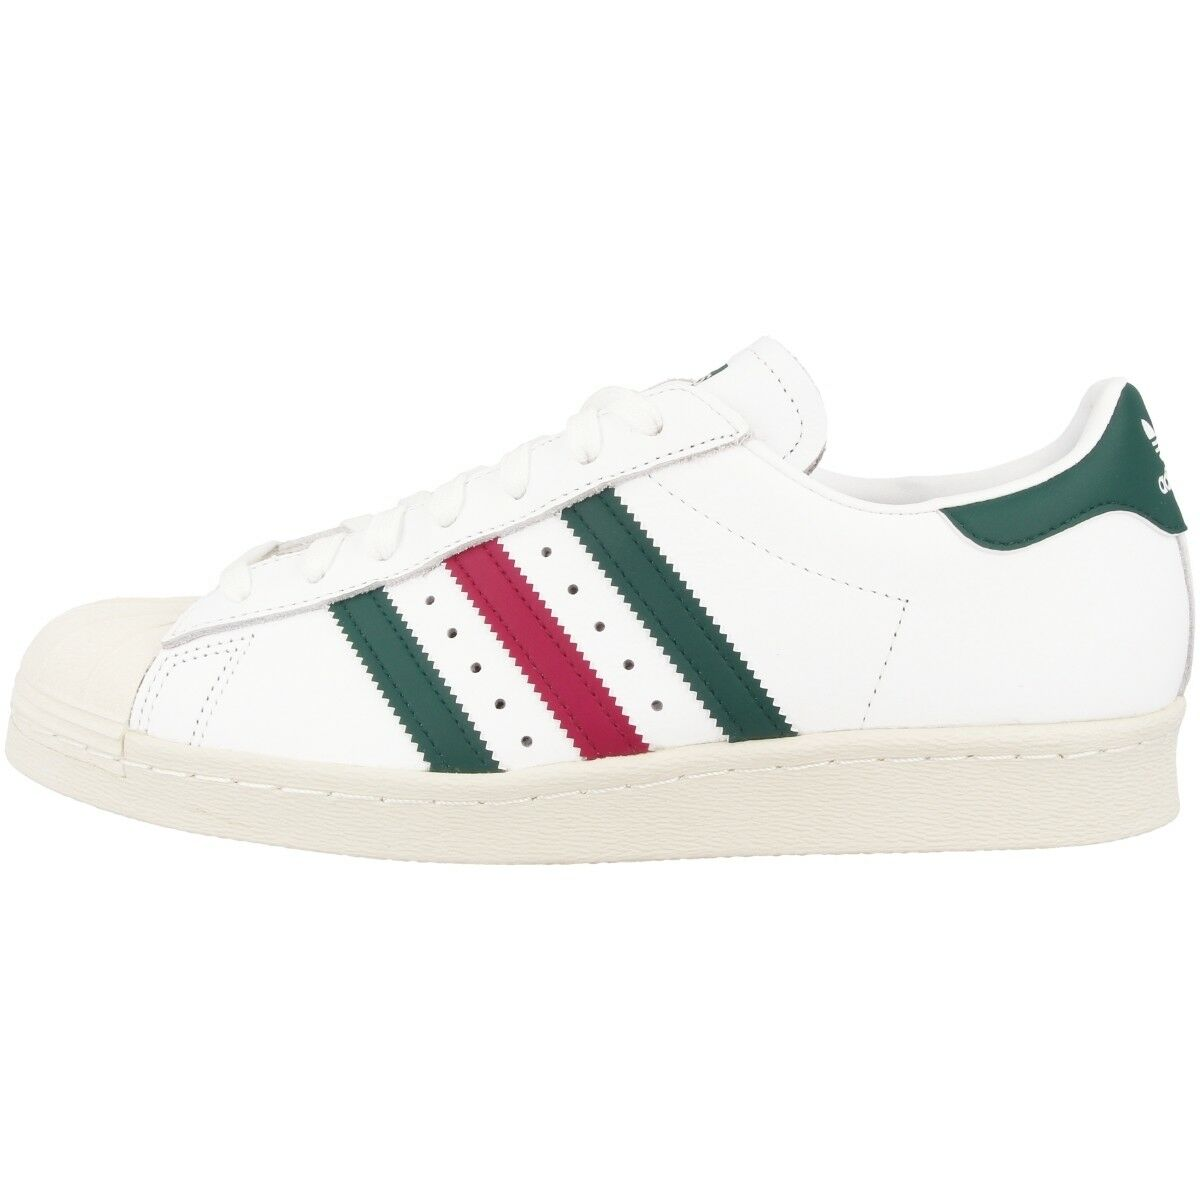 Zapatos promocionales para hombres y mujeres Adidas Superstar 80s Schuhe Retro Freizeit Sneaker Turnschuhe white green CQ2654